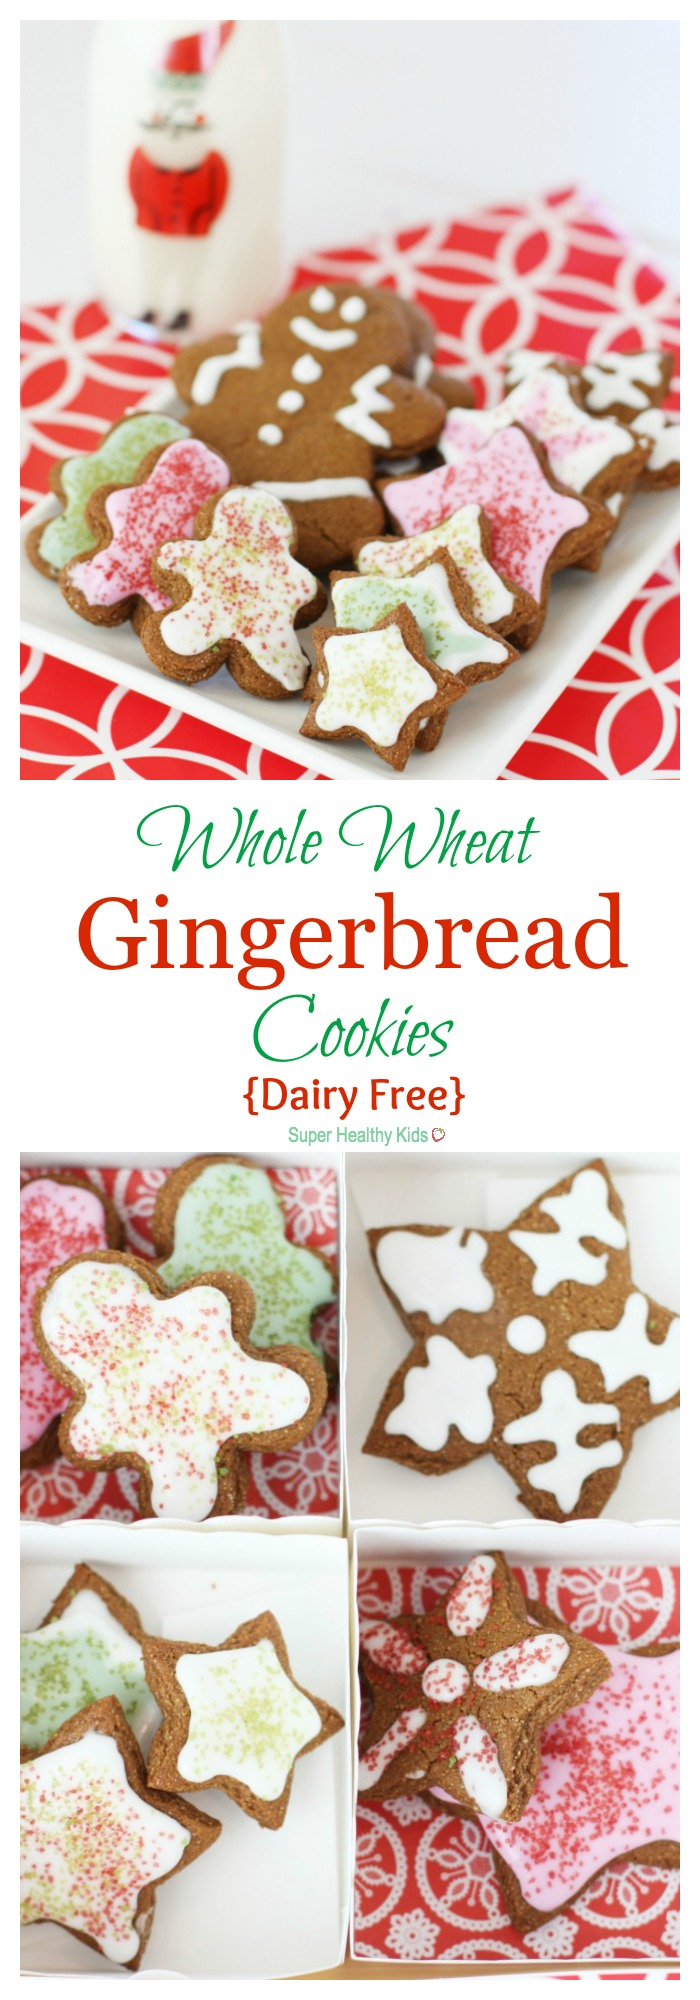 Whole Wheat Gingerbread Cookies {Dairy Free}. You won't be able to tell the difference! http://www.superhealthykids.com/whole-wheat-gingerbread-cookies-dairy-free/